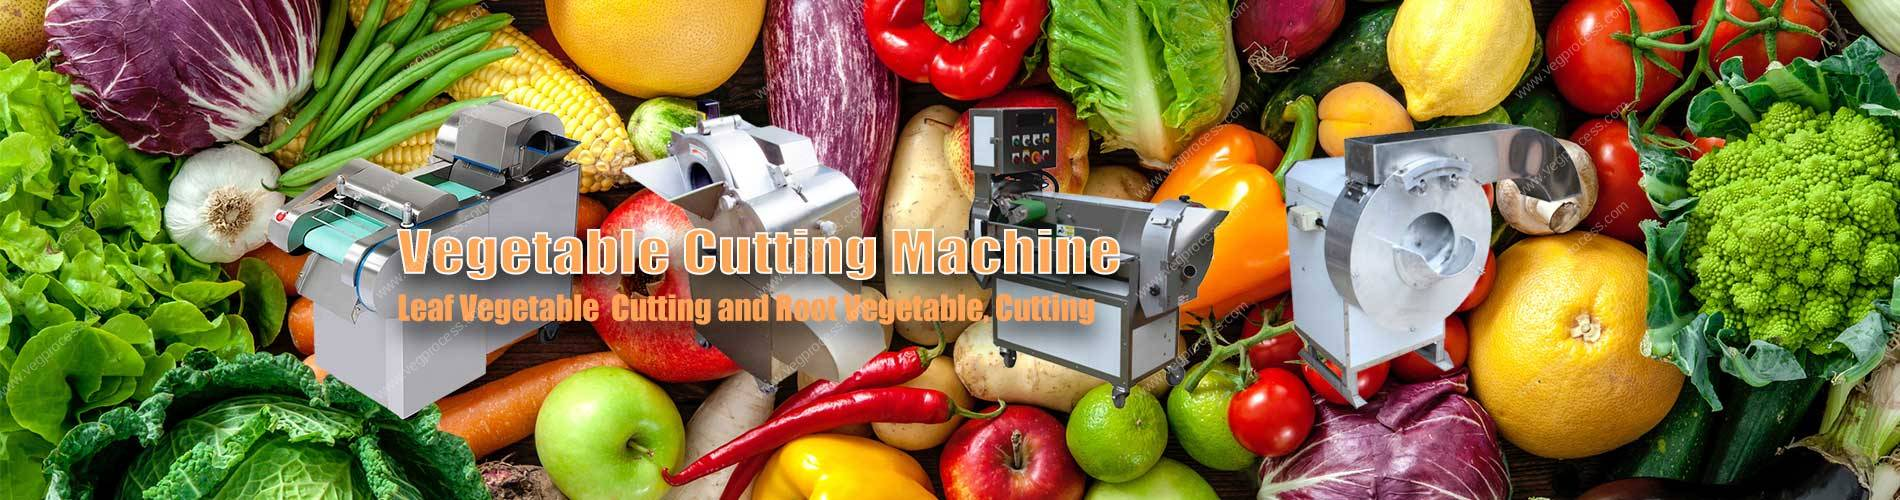 Banner03-Vegetable-Cutting-Machine-Manufacture